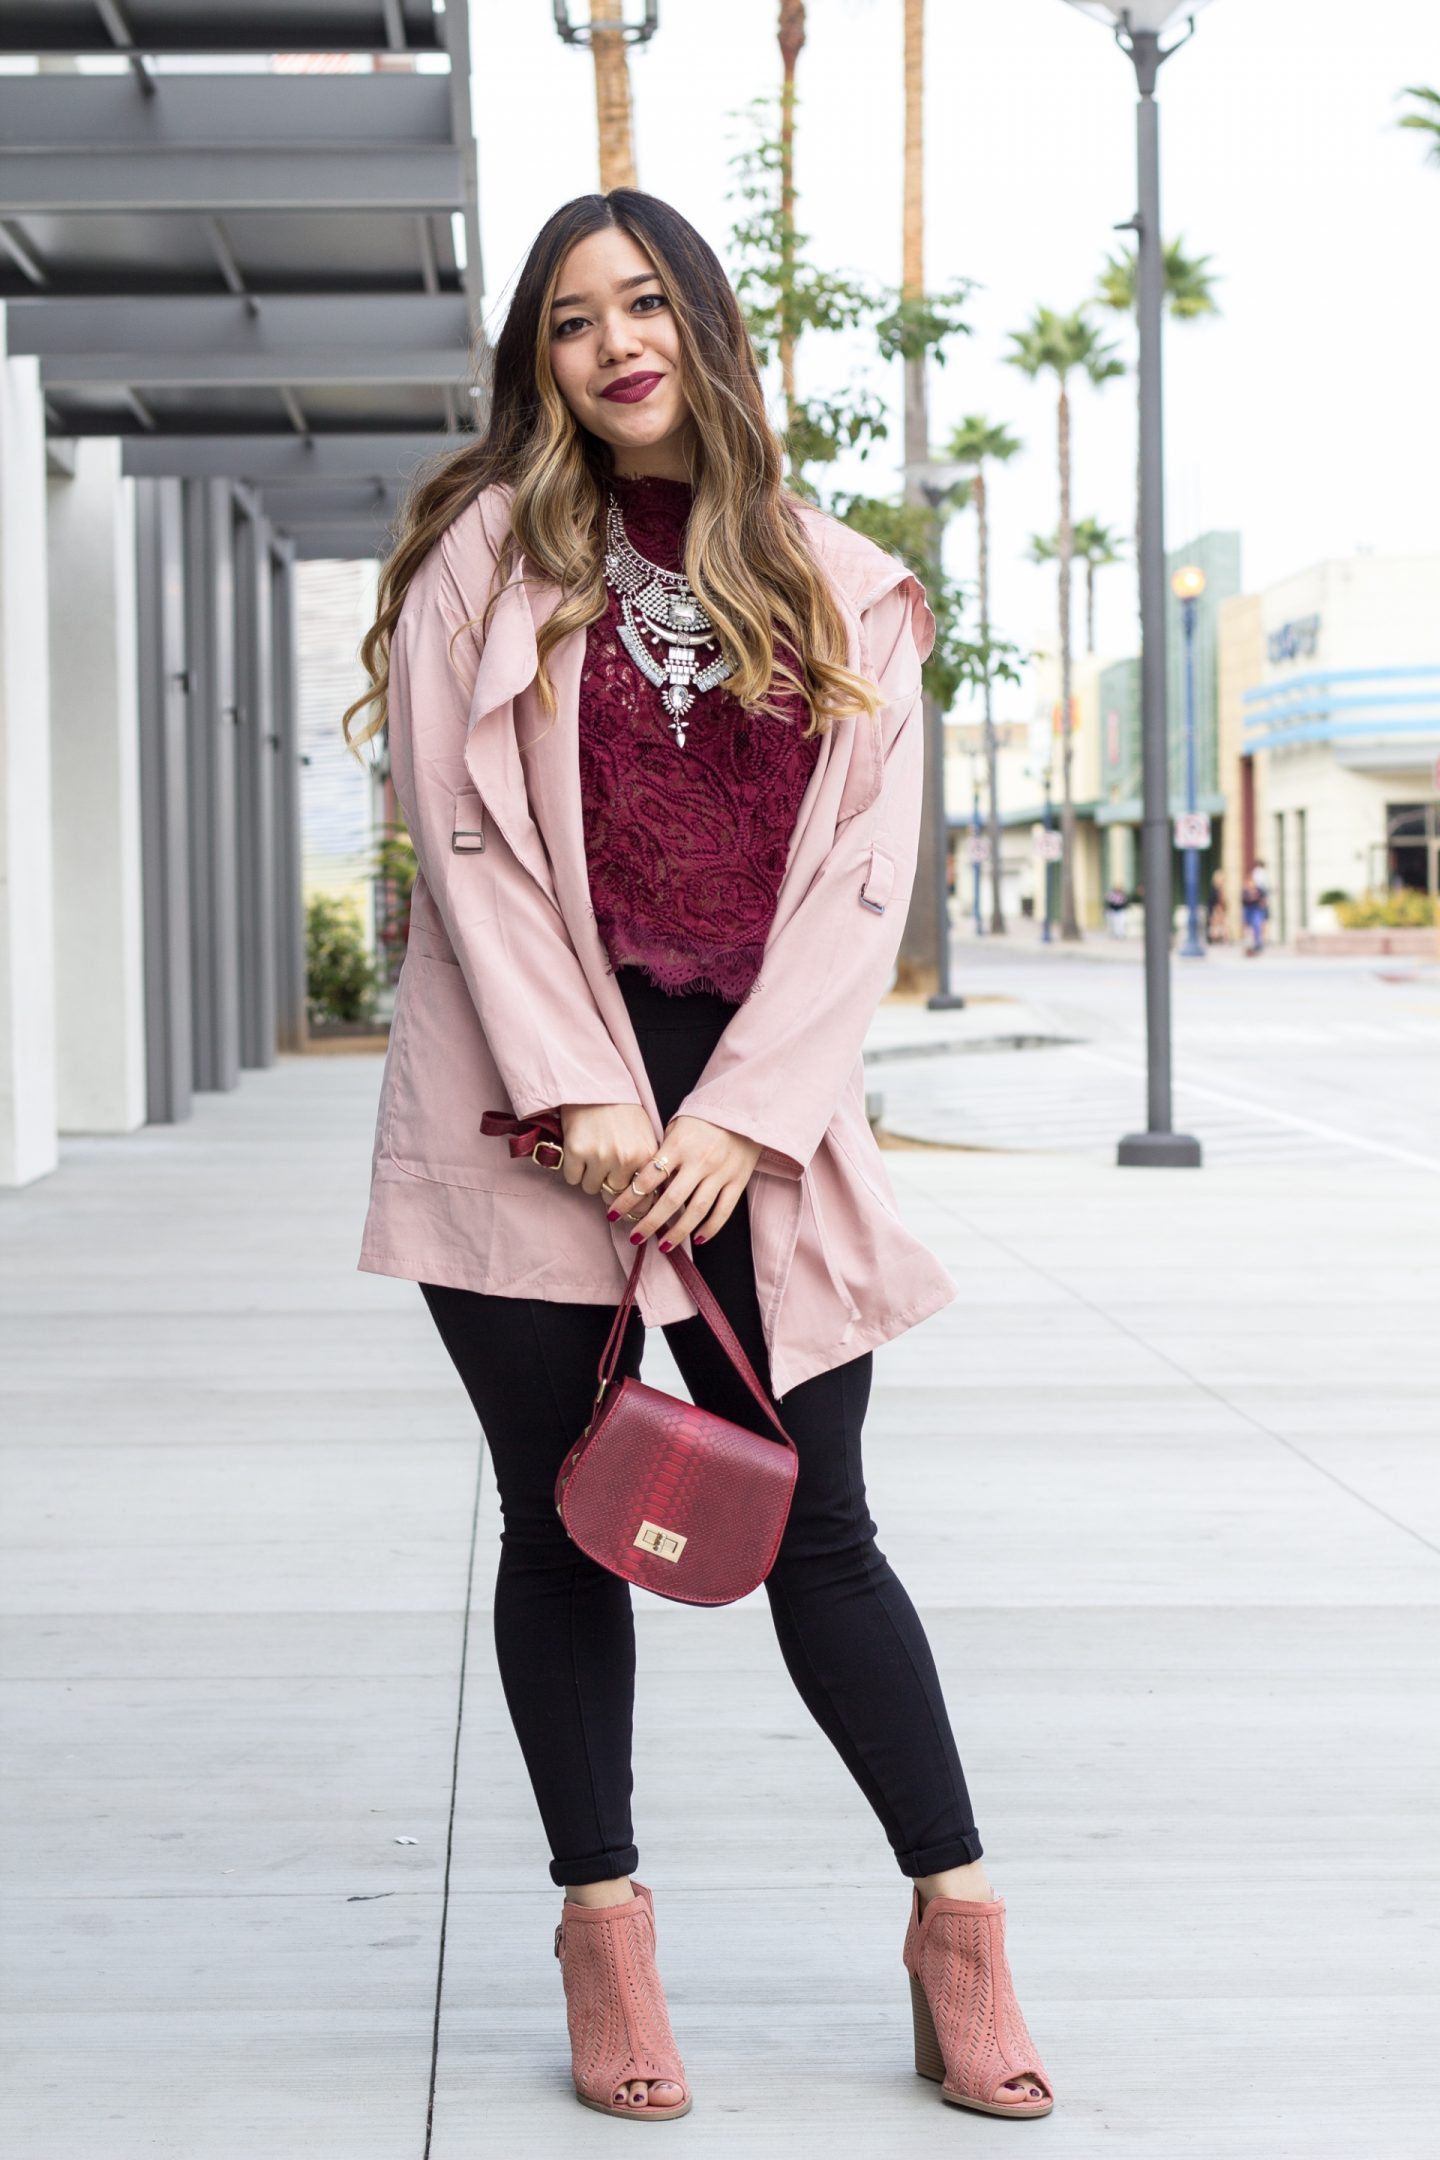 Lightweight Pink Jacket + Burgundy Lace Top